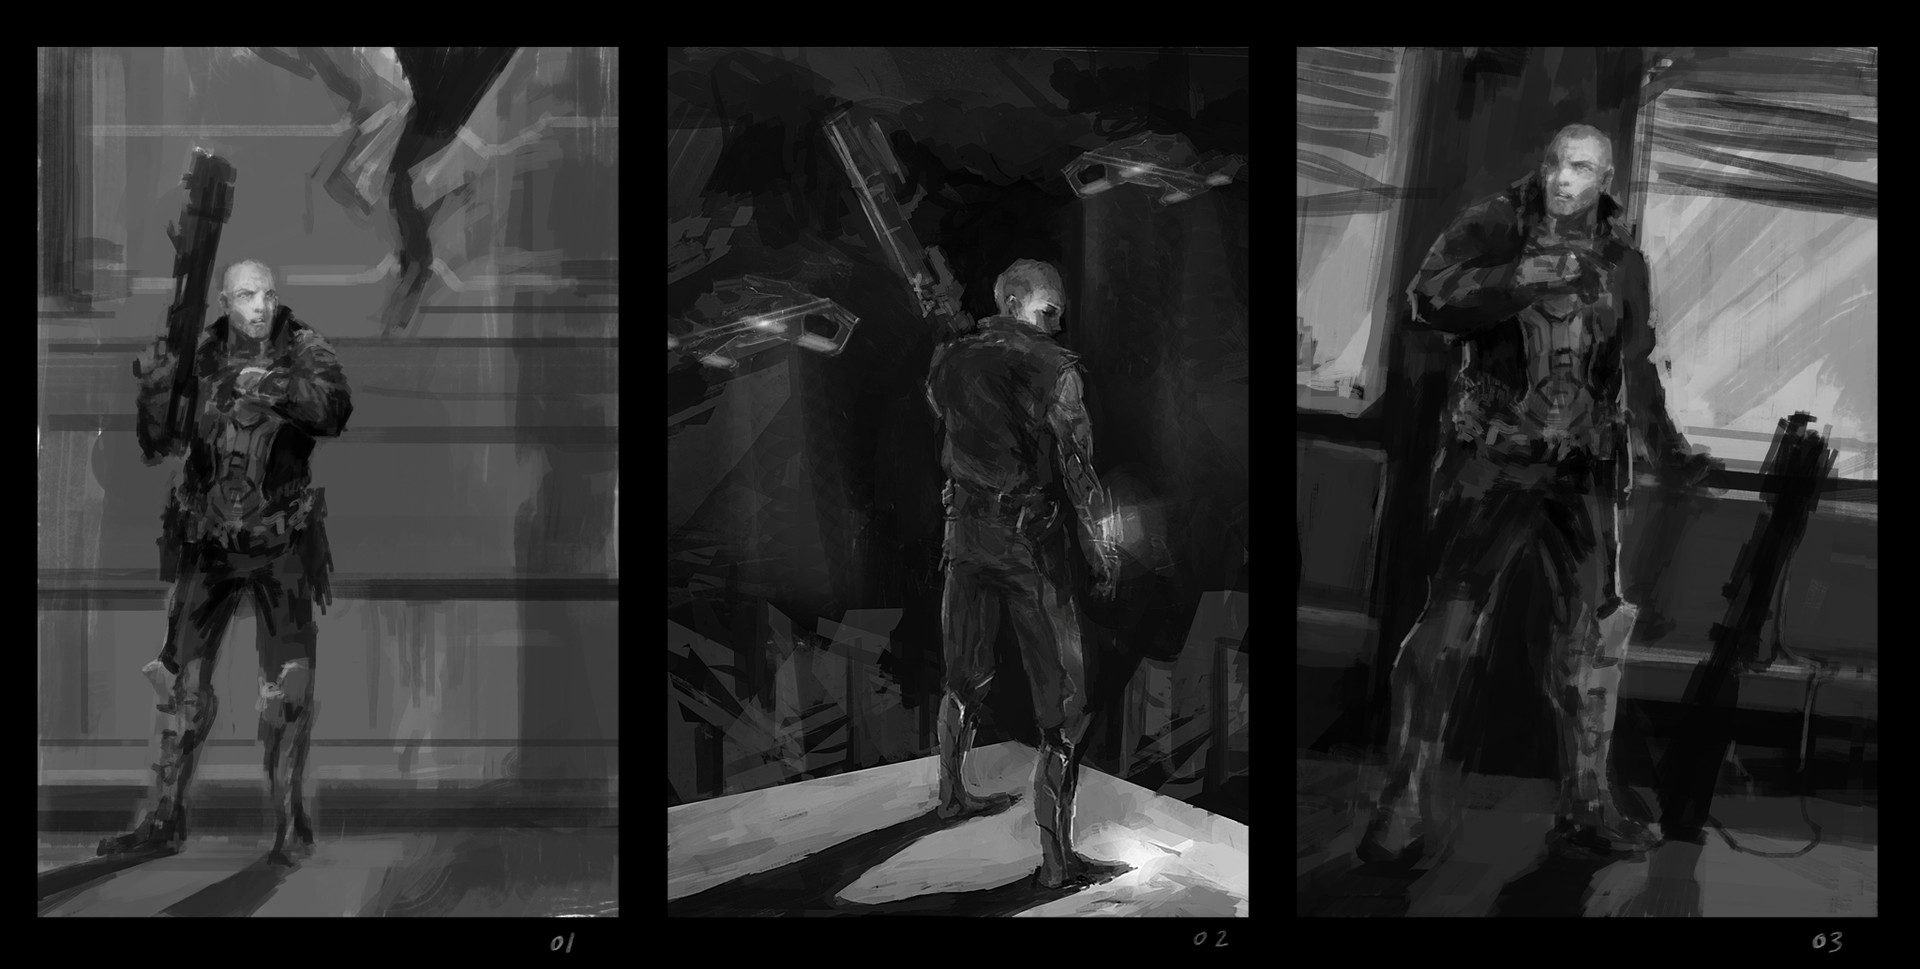 Alexandre chaudret dos officer 01 sketches